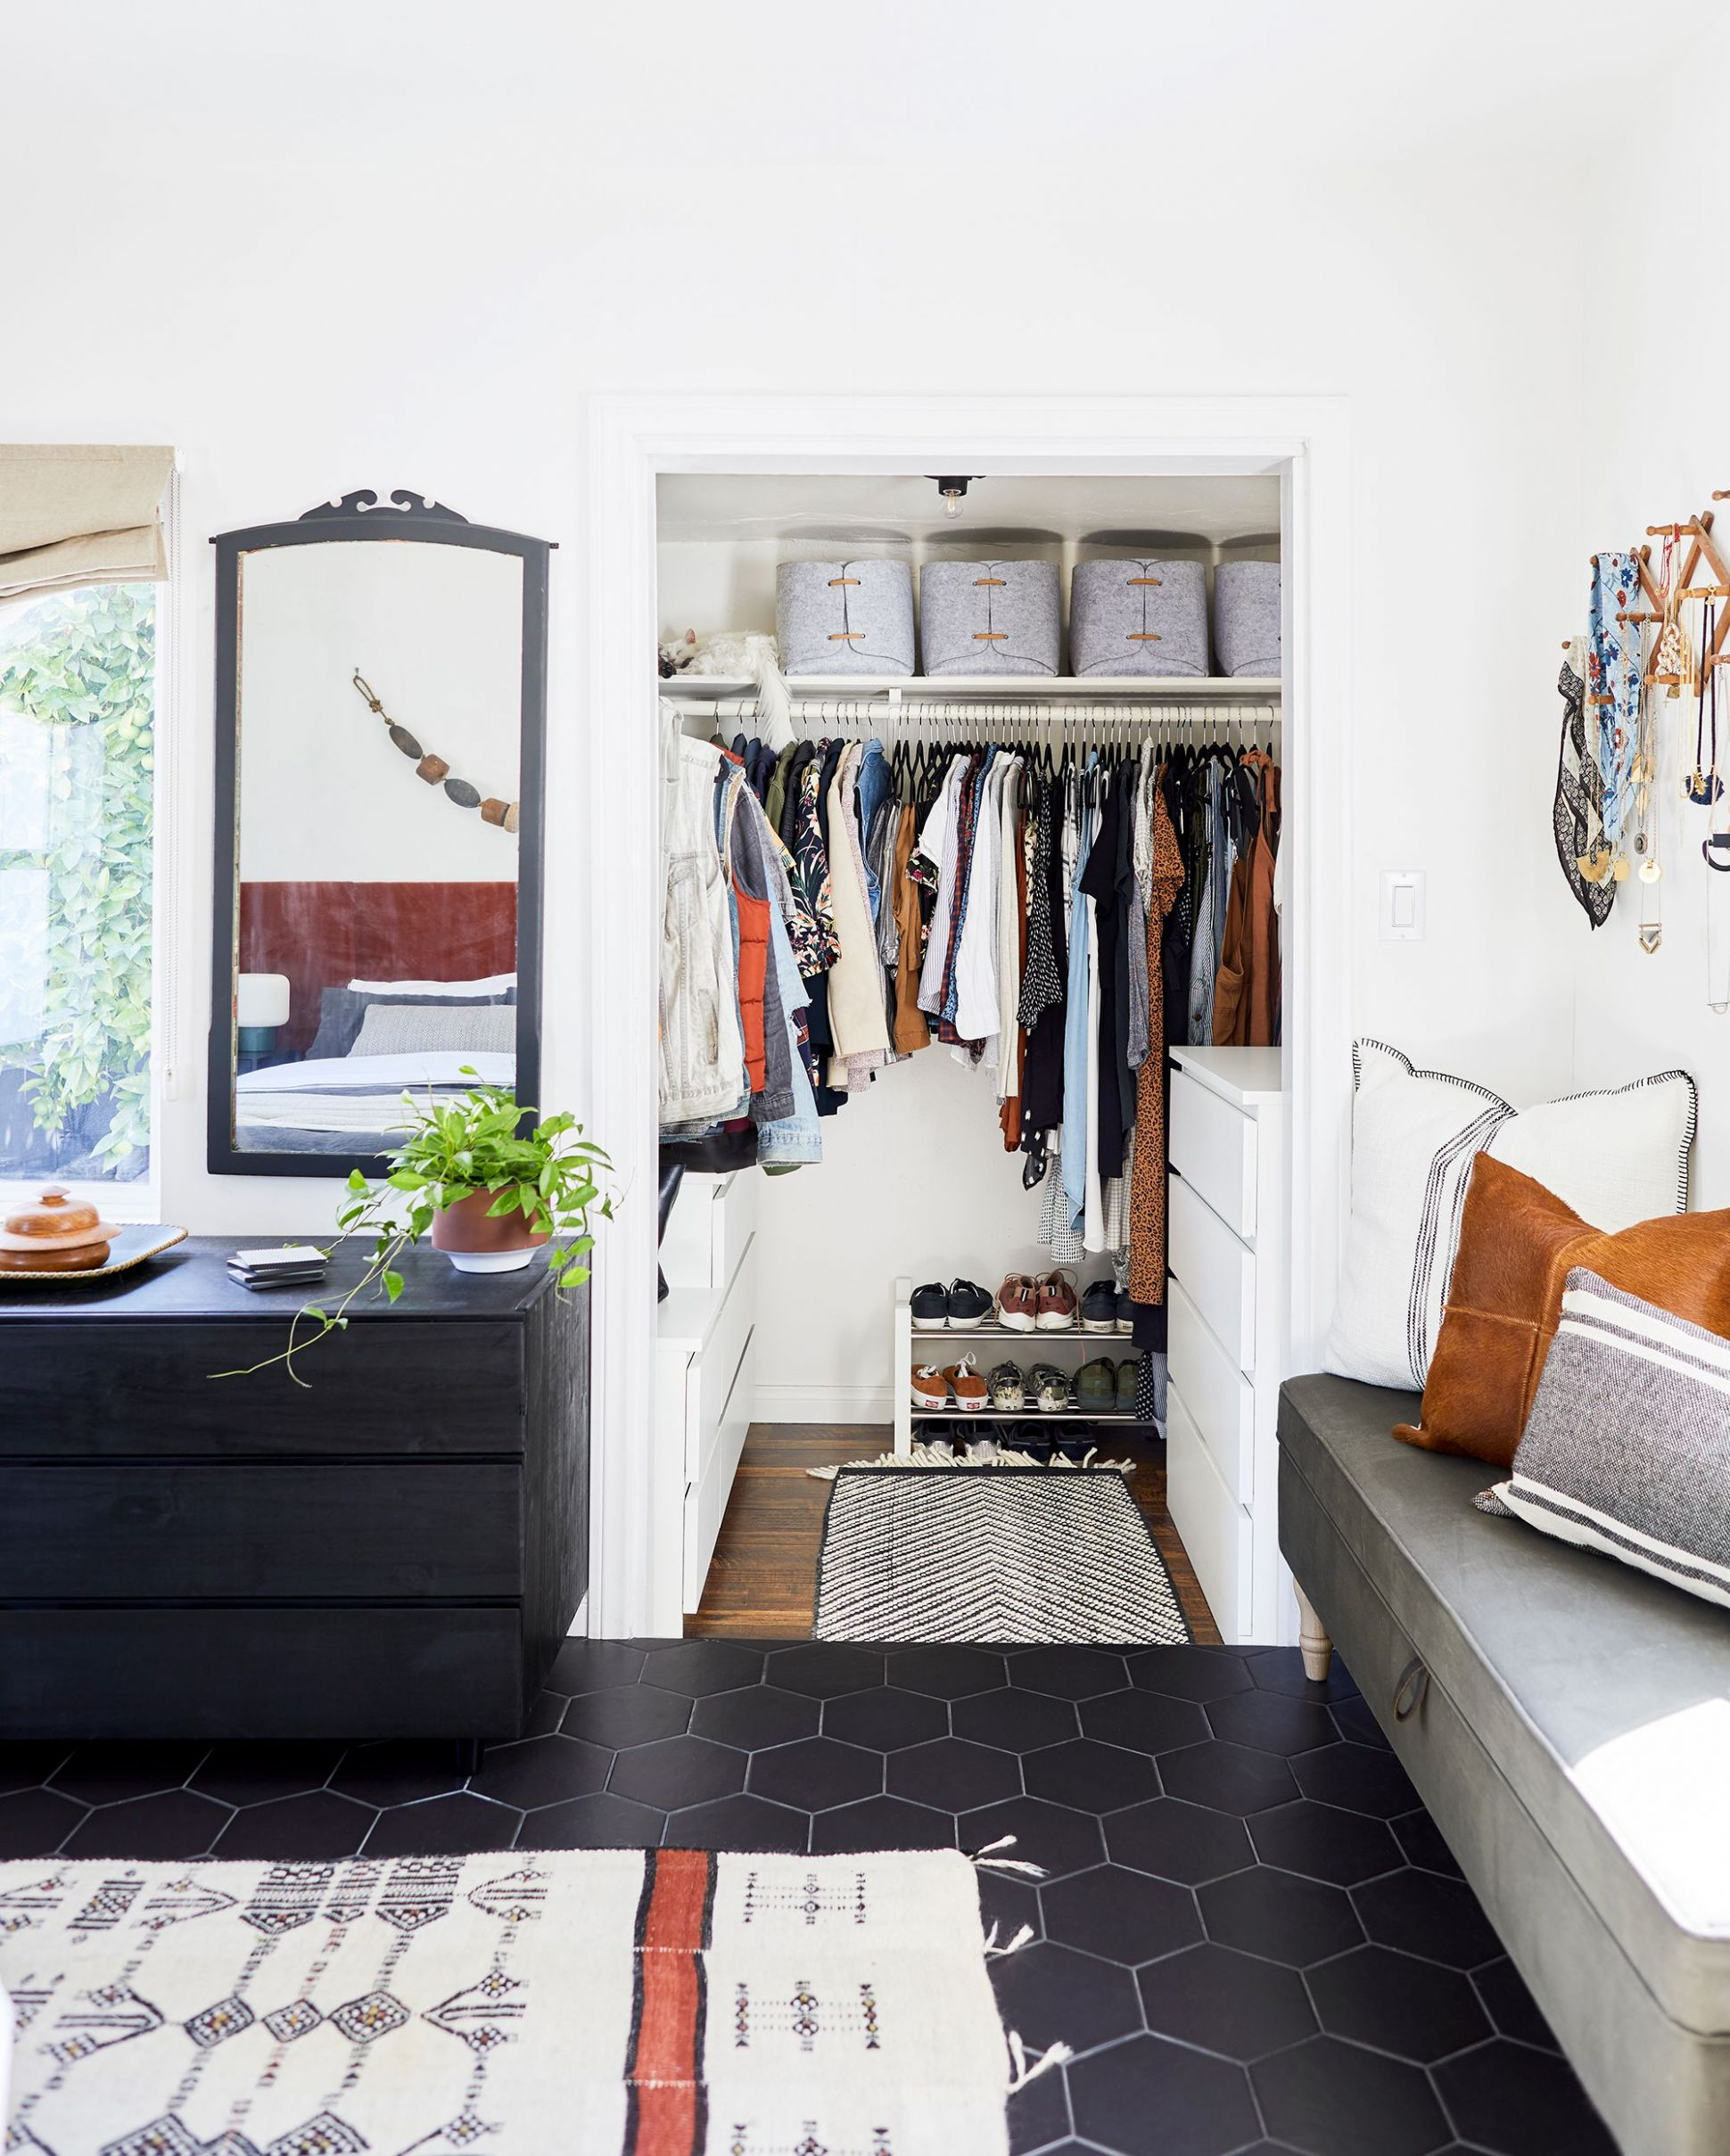 12 Best Small Closet Organization Ideas - Storage Tip for Small ...